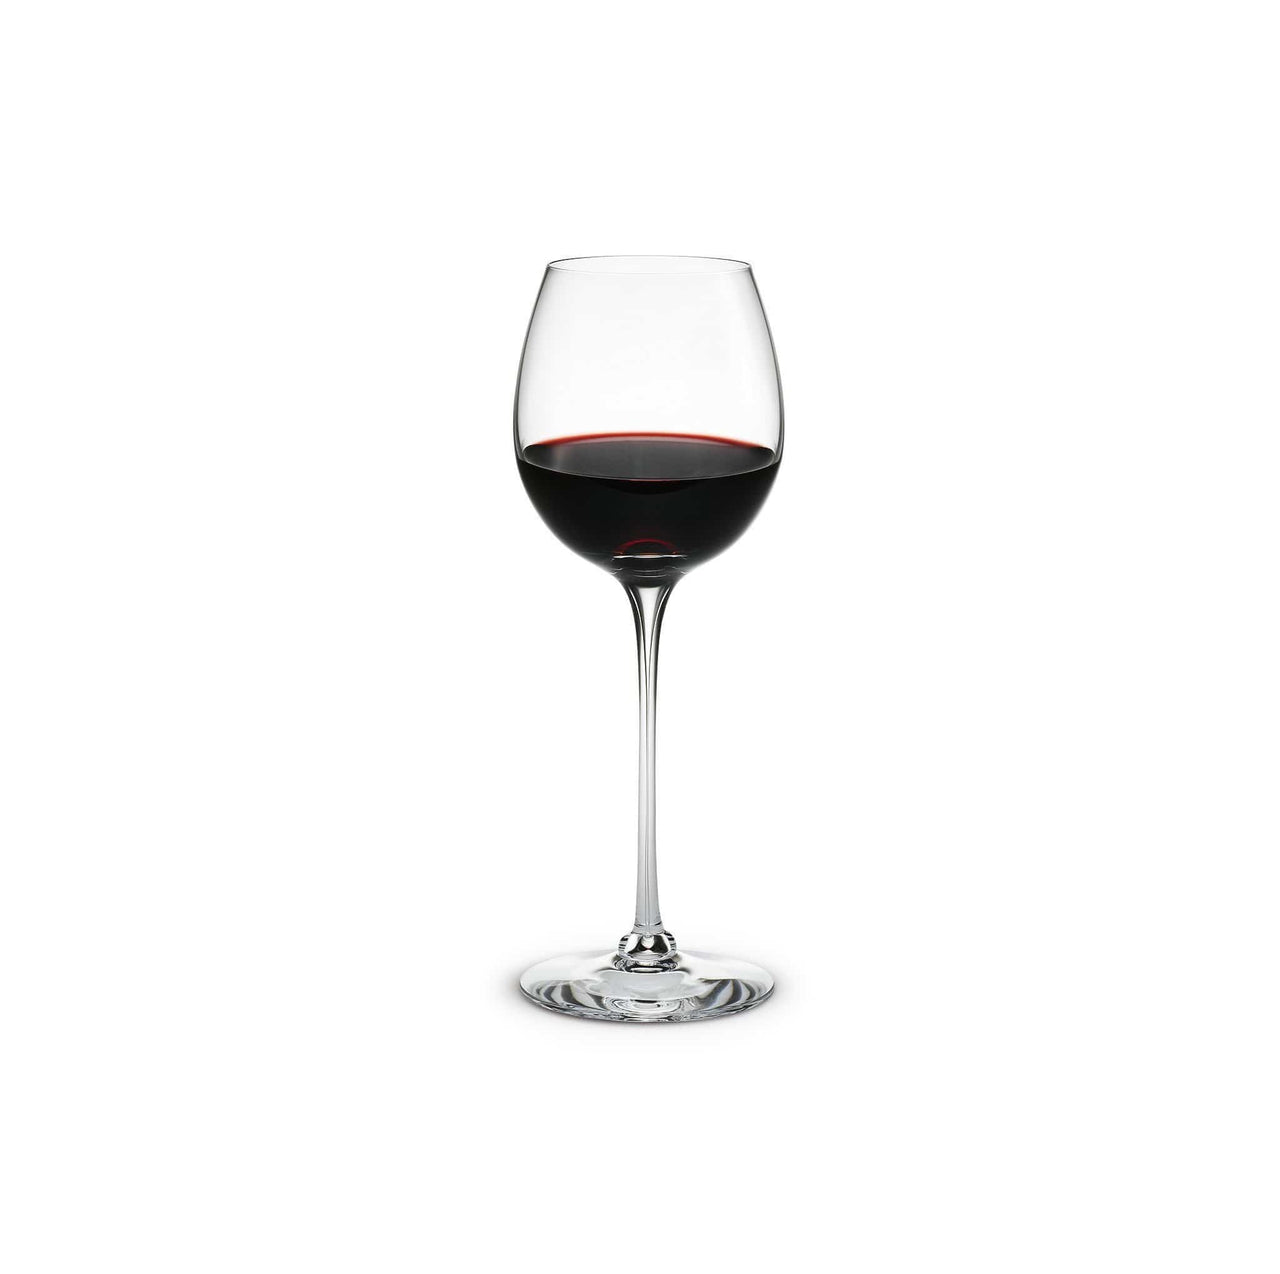 NORMODE Glassware Holmegaard Fontaine Burgundy Glass